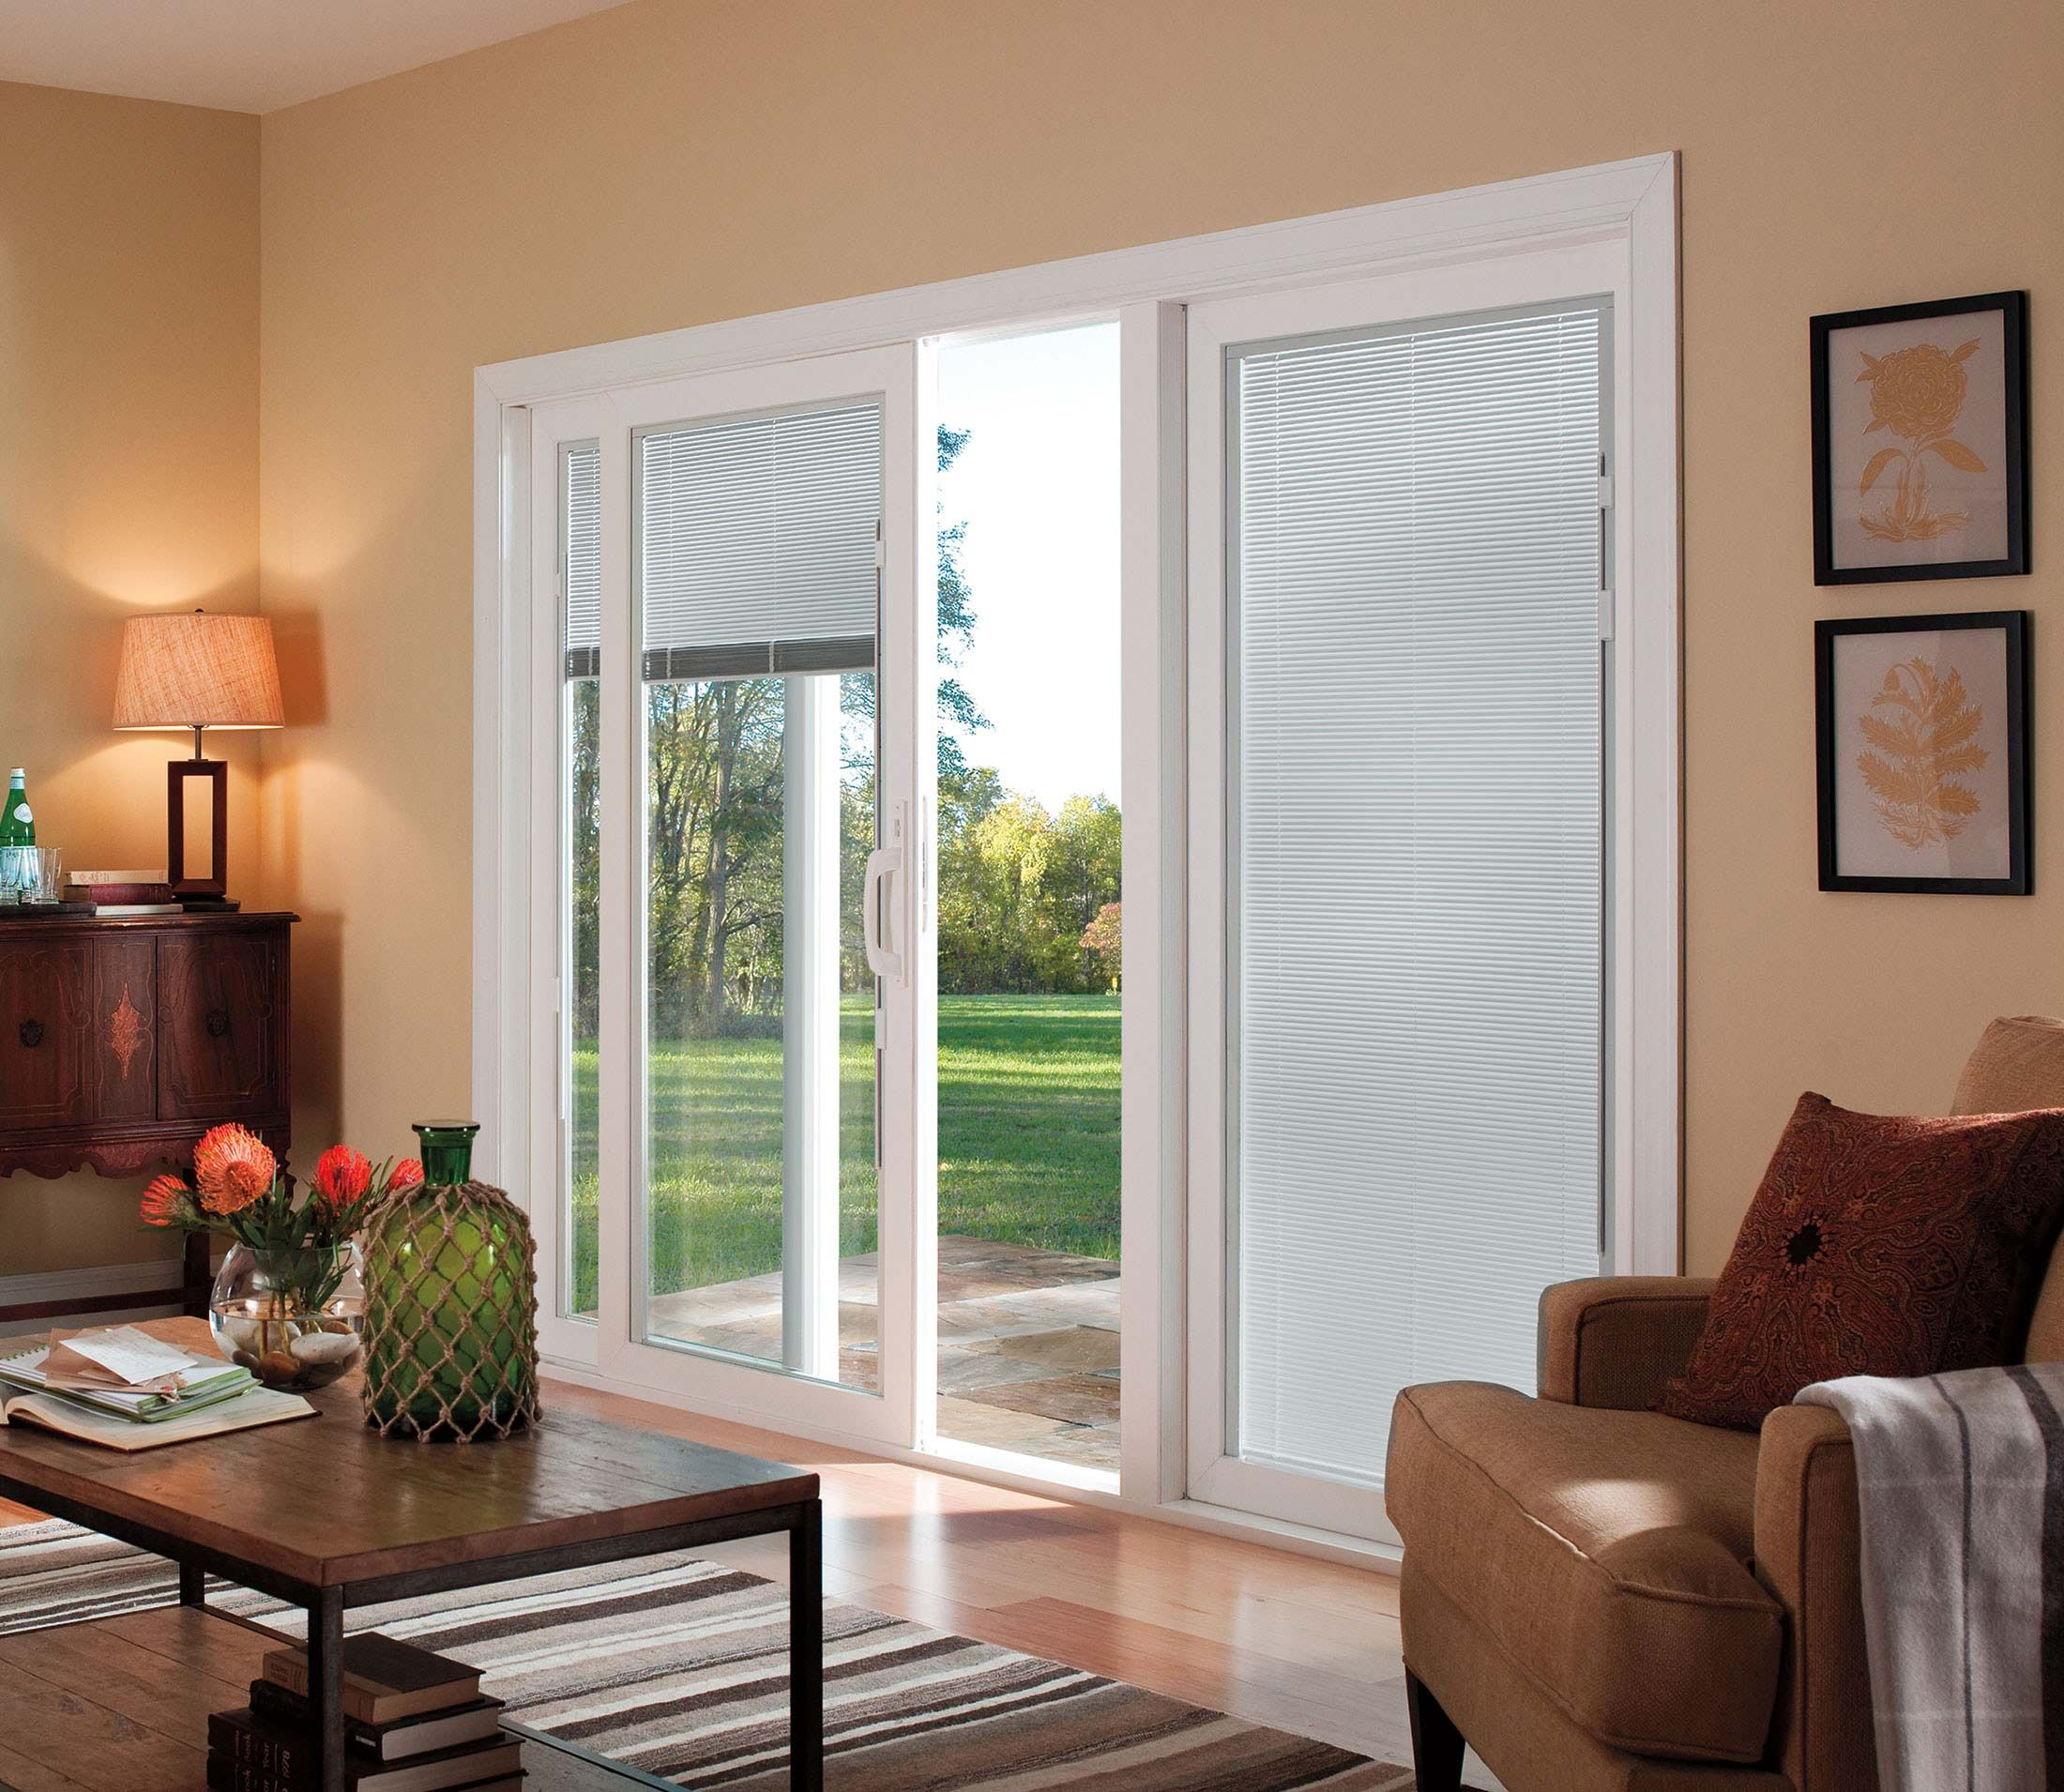 Pella 350 Series Sliding Patio Door Vinyl